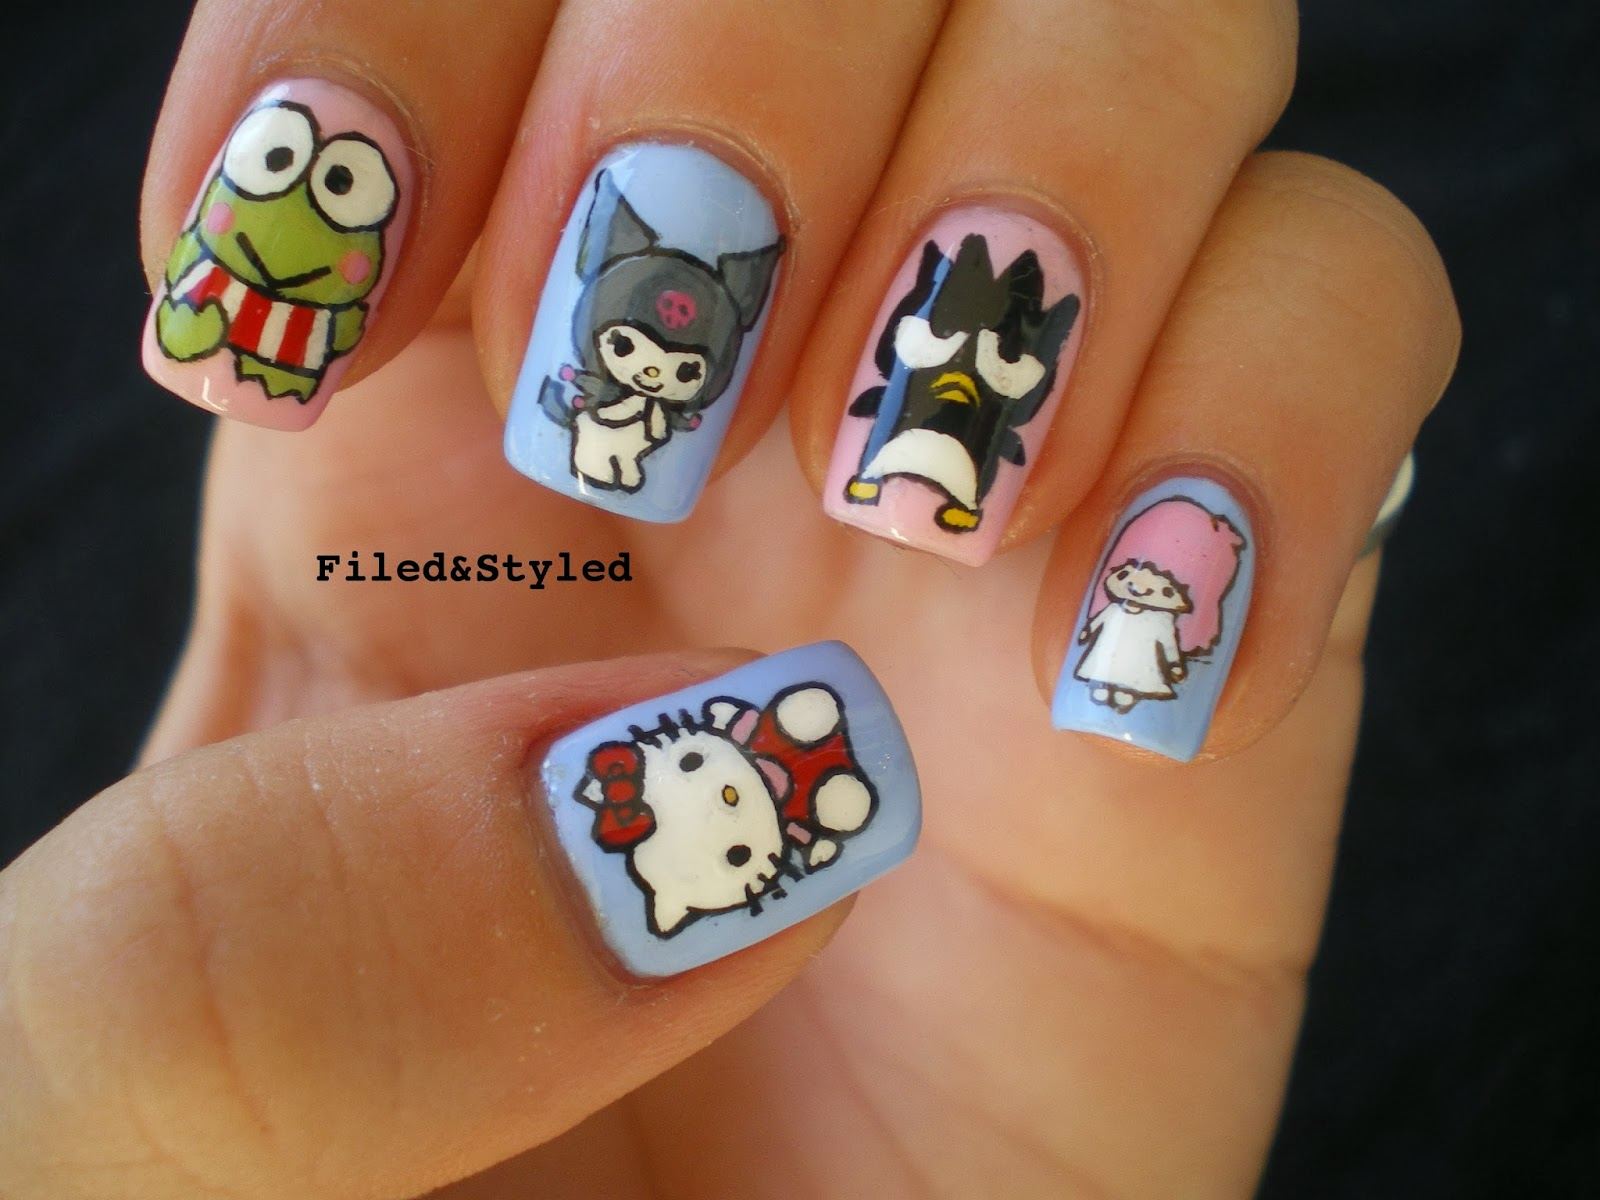 Hello Kitty Nails | Filed & Styled Filed & Styled: Hello ...